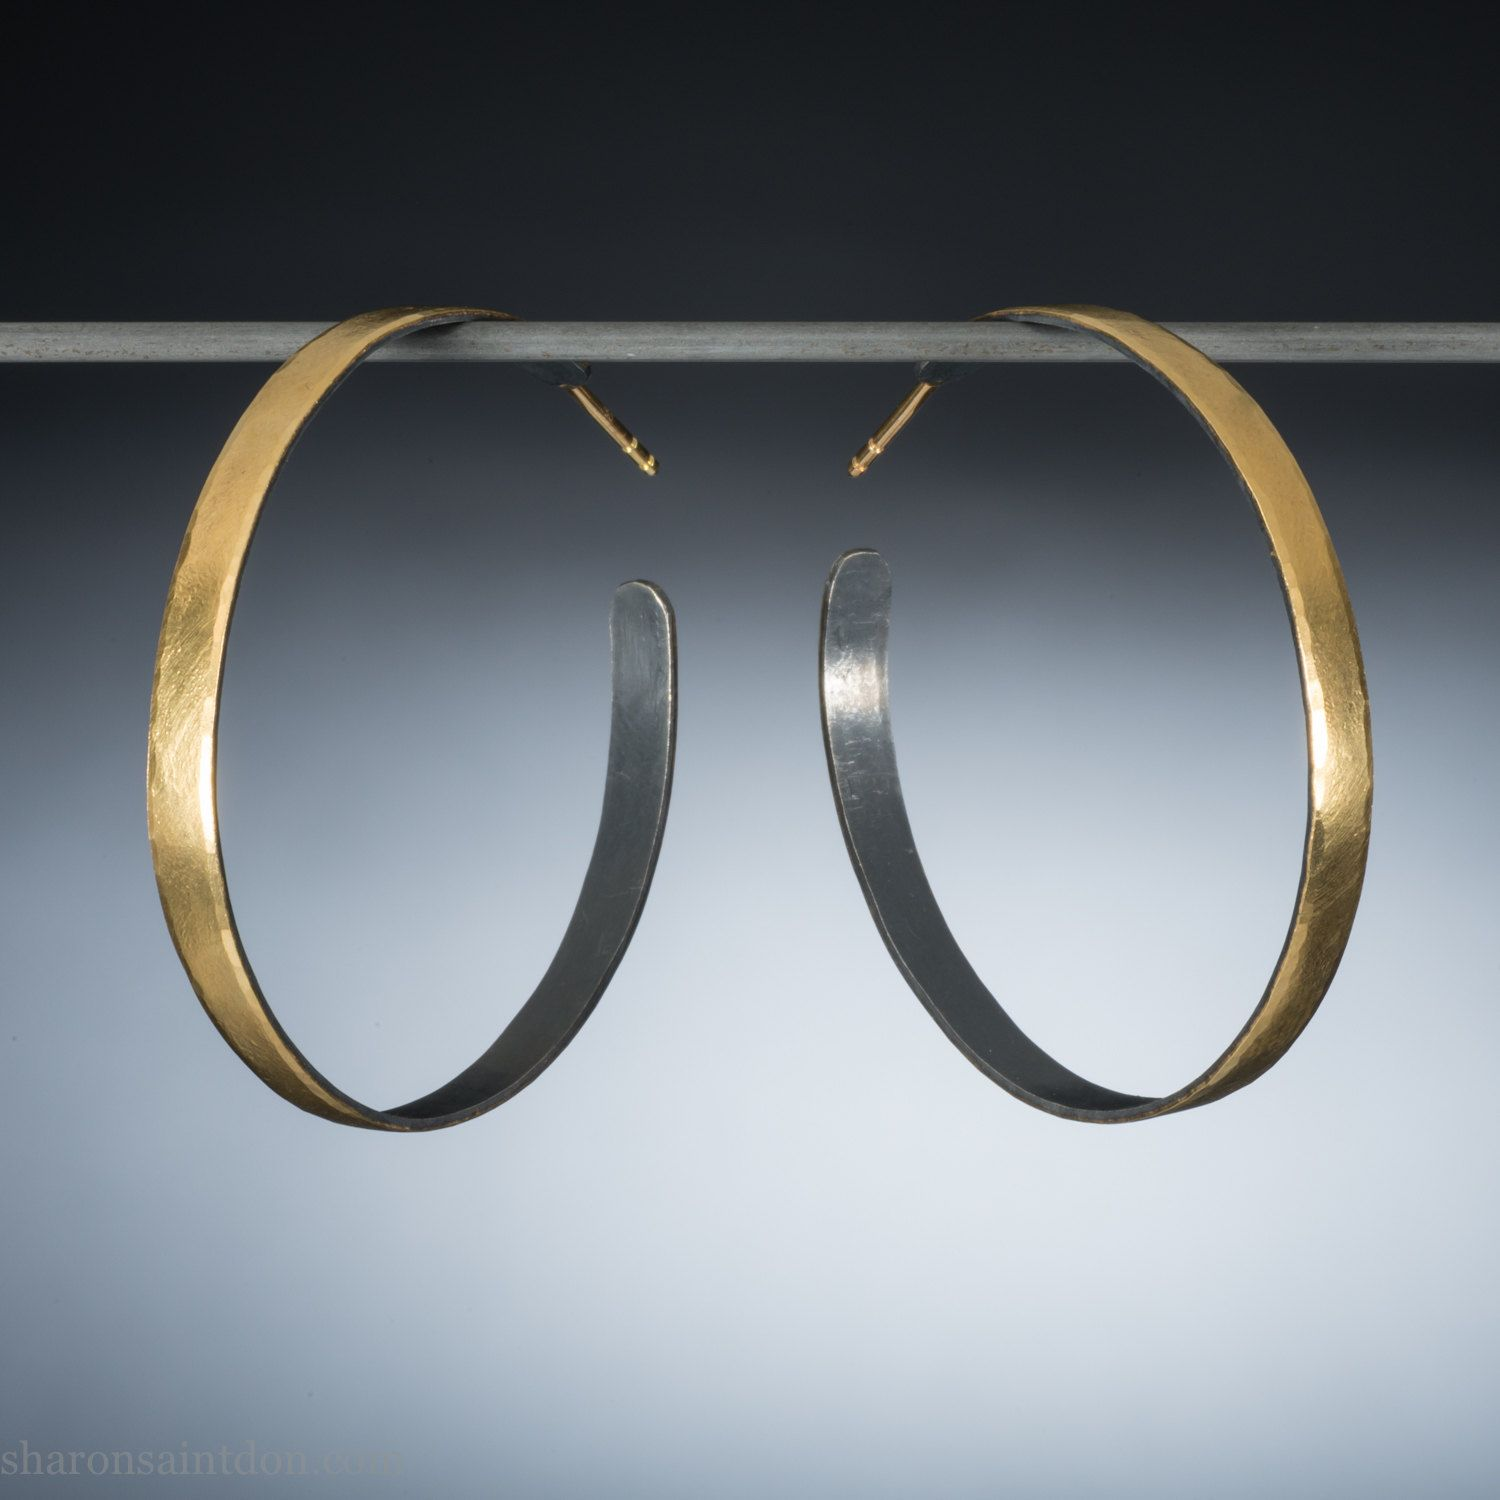 560 Gold Hoop Earrings 50mm 2 Inch For Women Wide Handmade 22k Solid 18k Posts Locking Backs Very Special Gift Her Ehwg 50 By